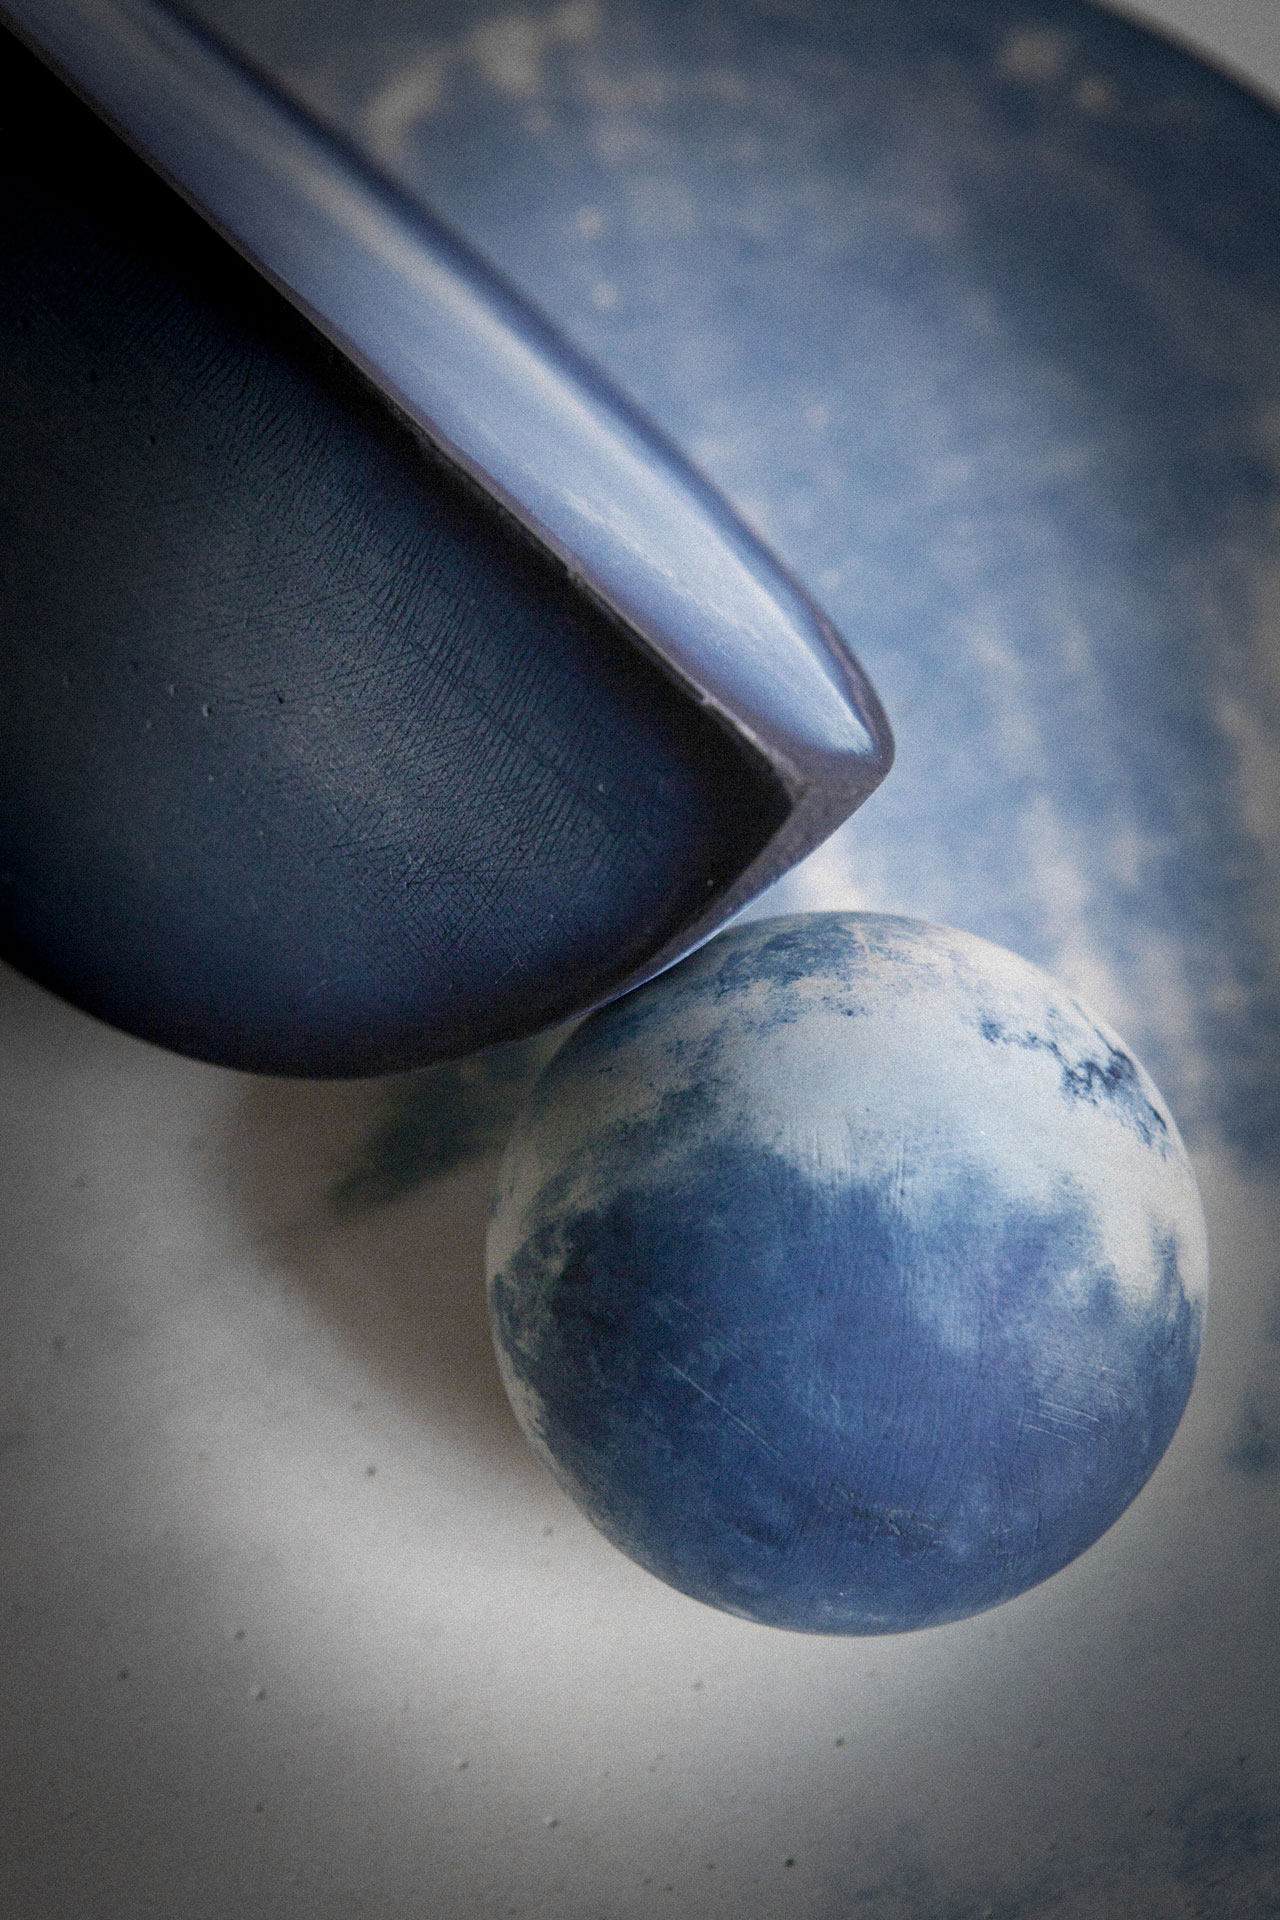 A detail from one of the limited edition sculptures from the Out of the Blue series by Studiopepe. Photo by Silvia Rivoltella.